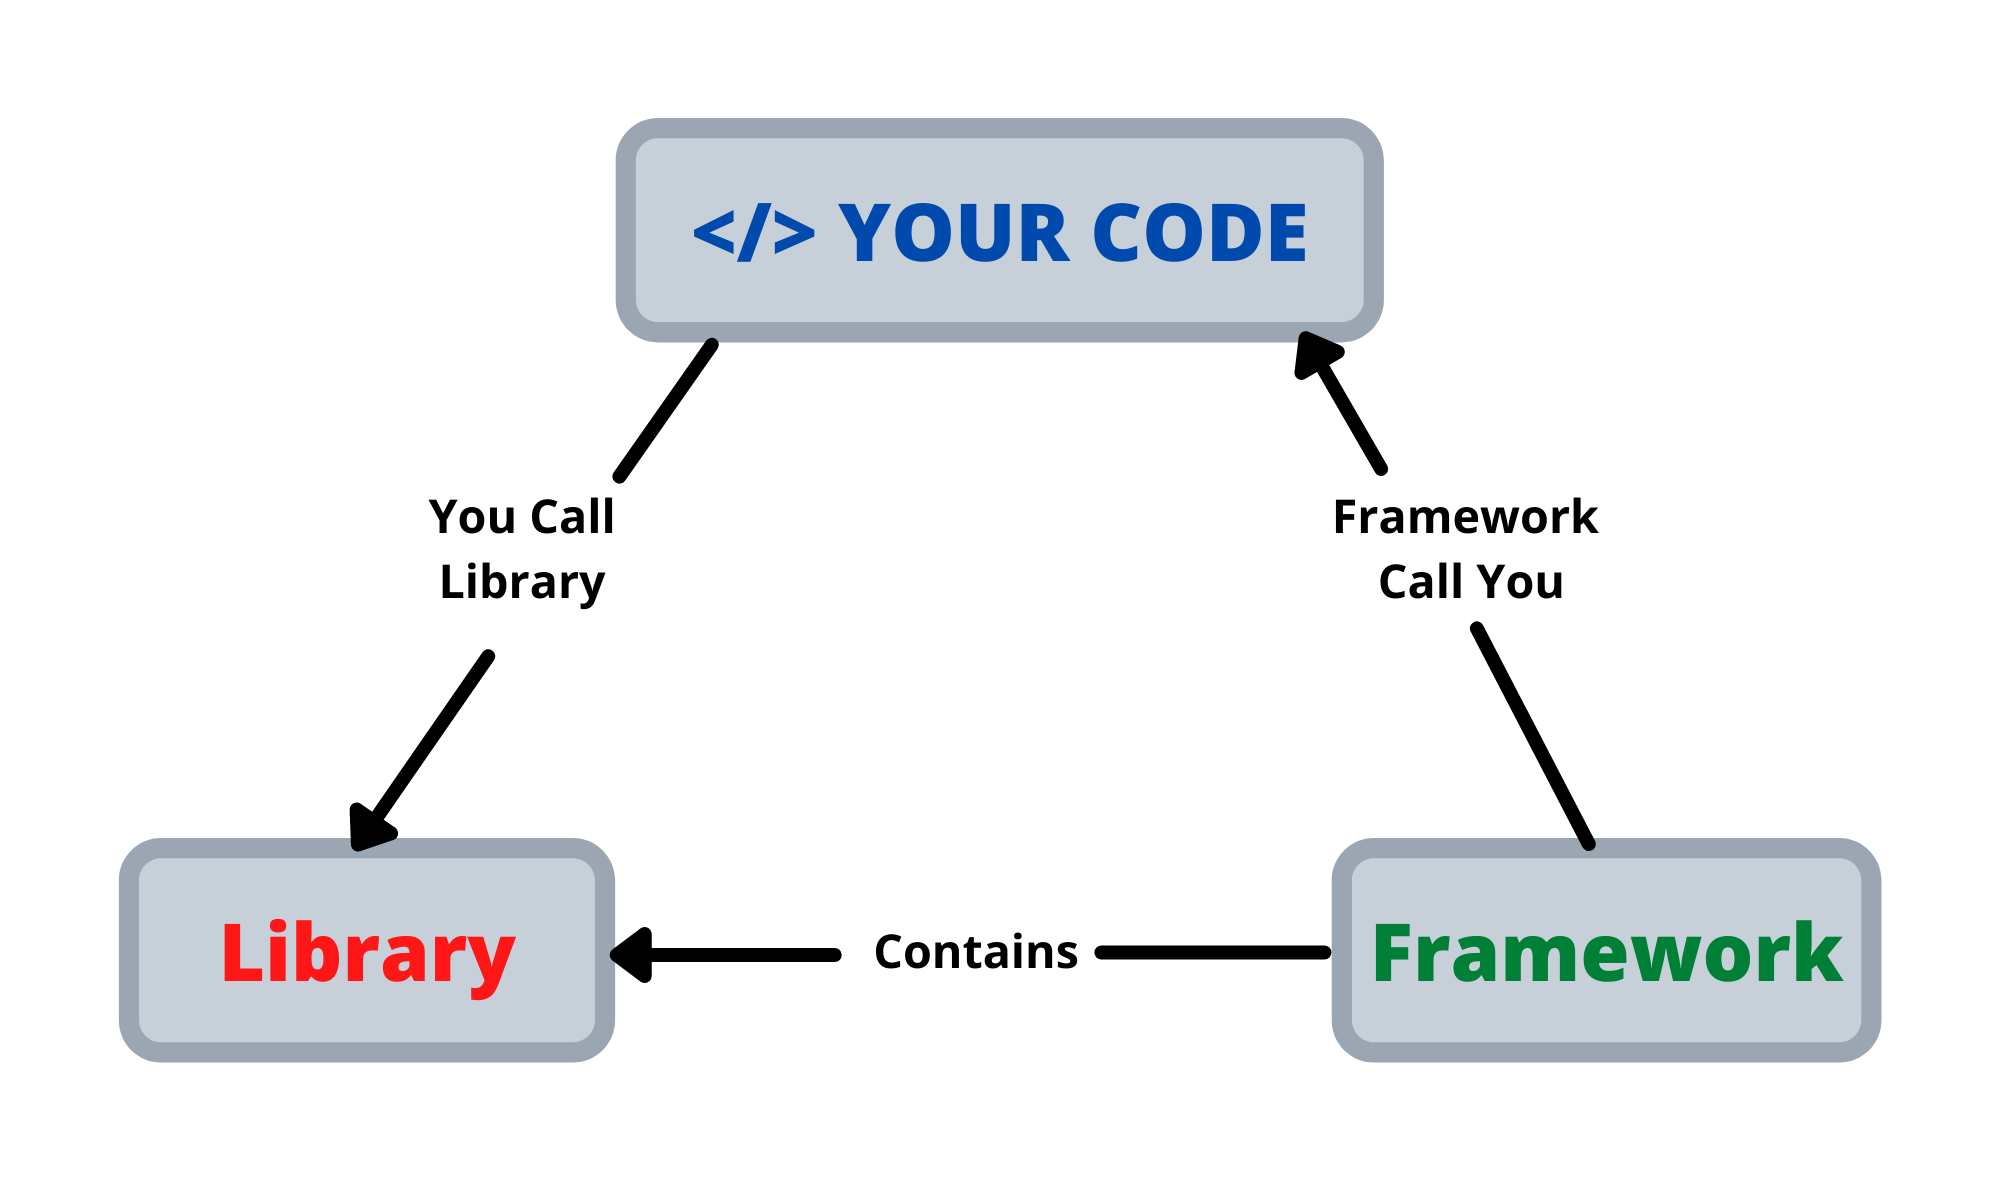 Frameworks vs library whats the difference between the two?